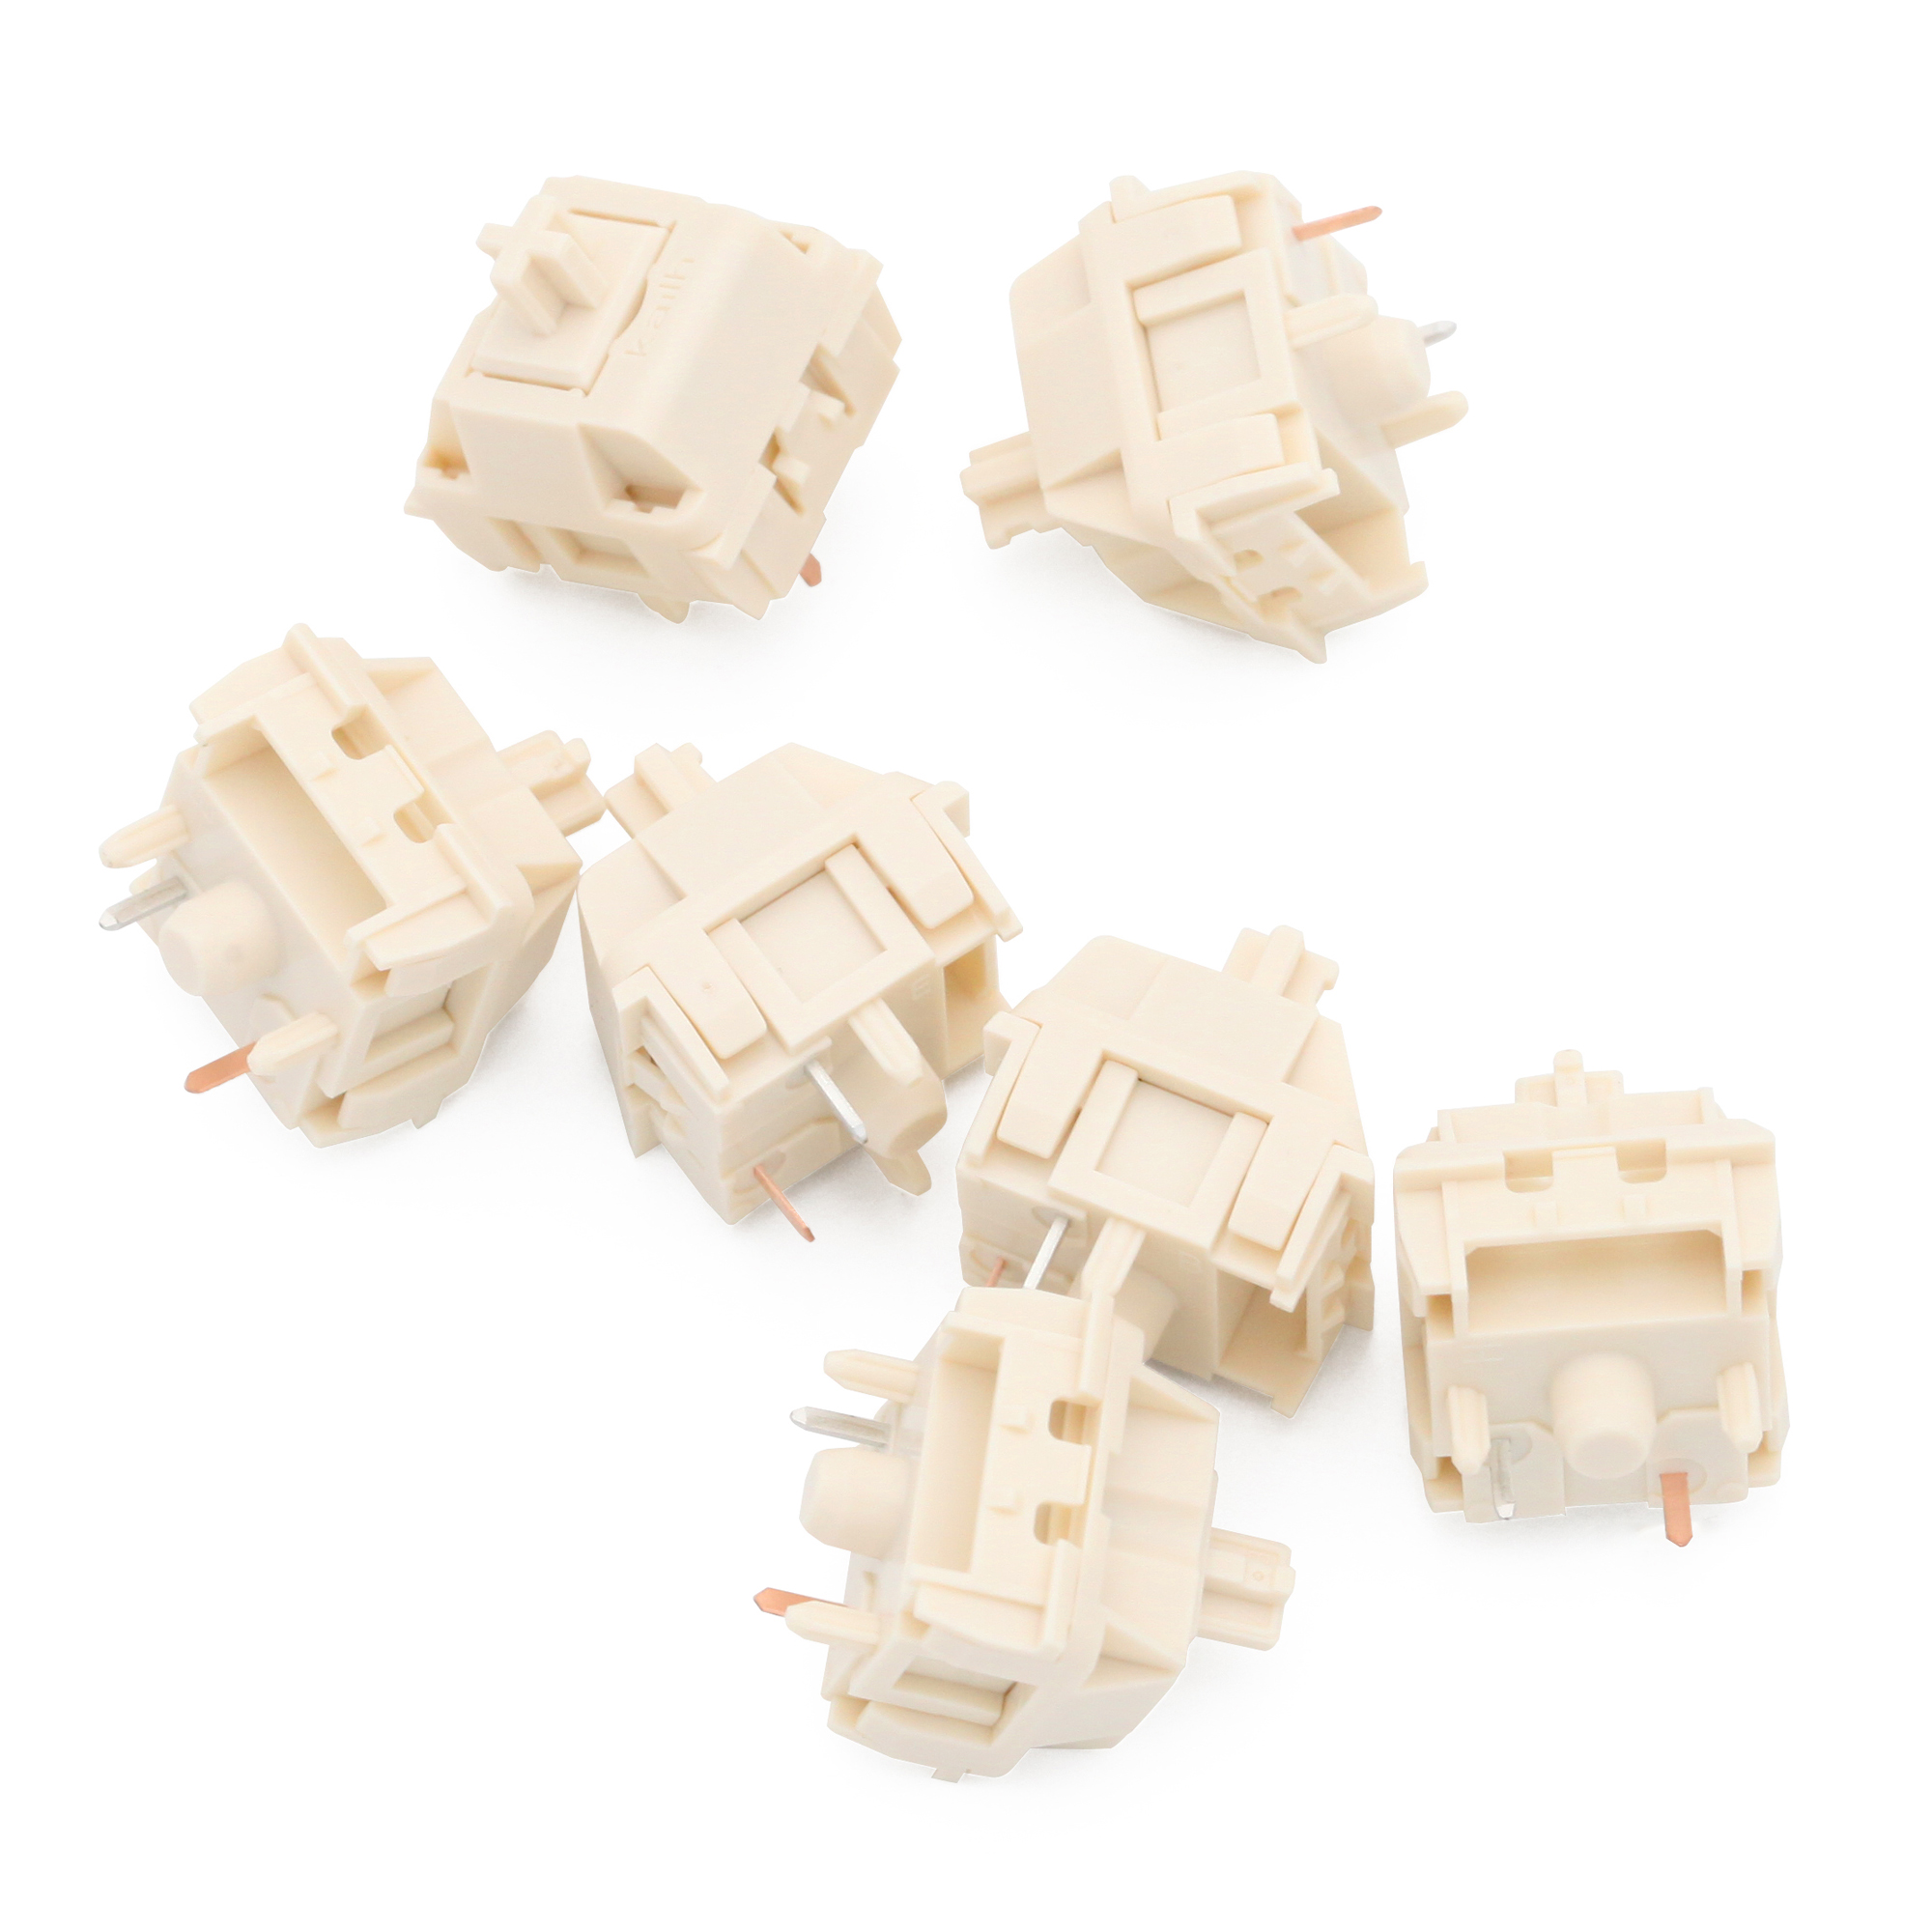 NovelKeys X Kailh Cream Switch 4pin 5pin RGB SMD Linear 55g Force 5pin Mx Clone Switch For Backlit Mechanical Keyboard 50m